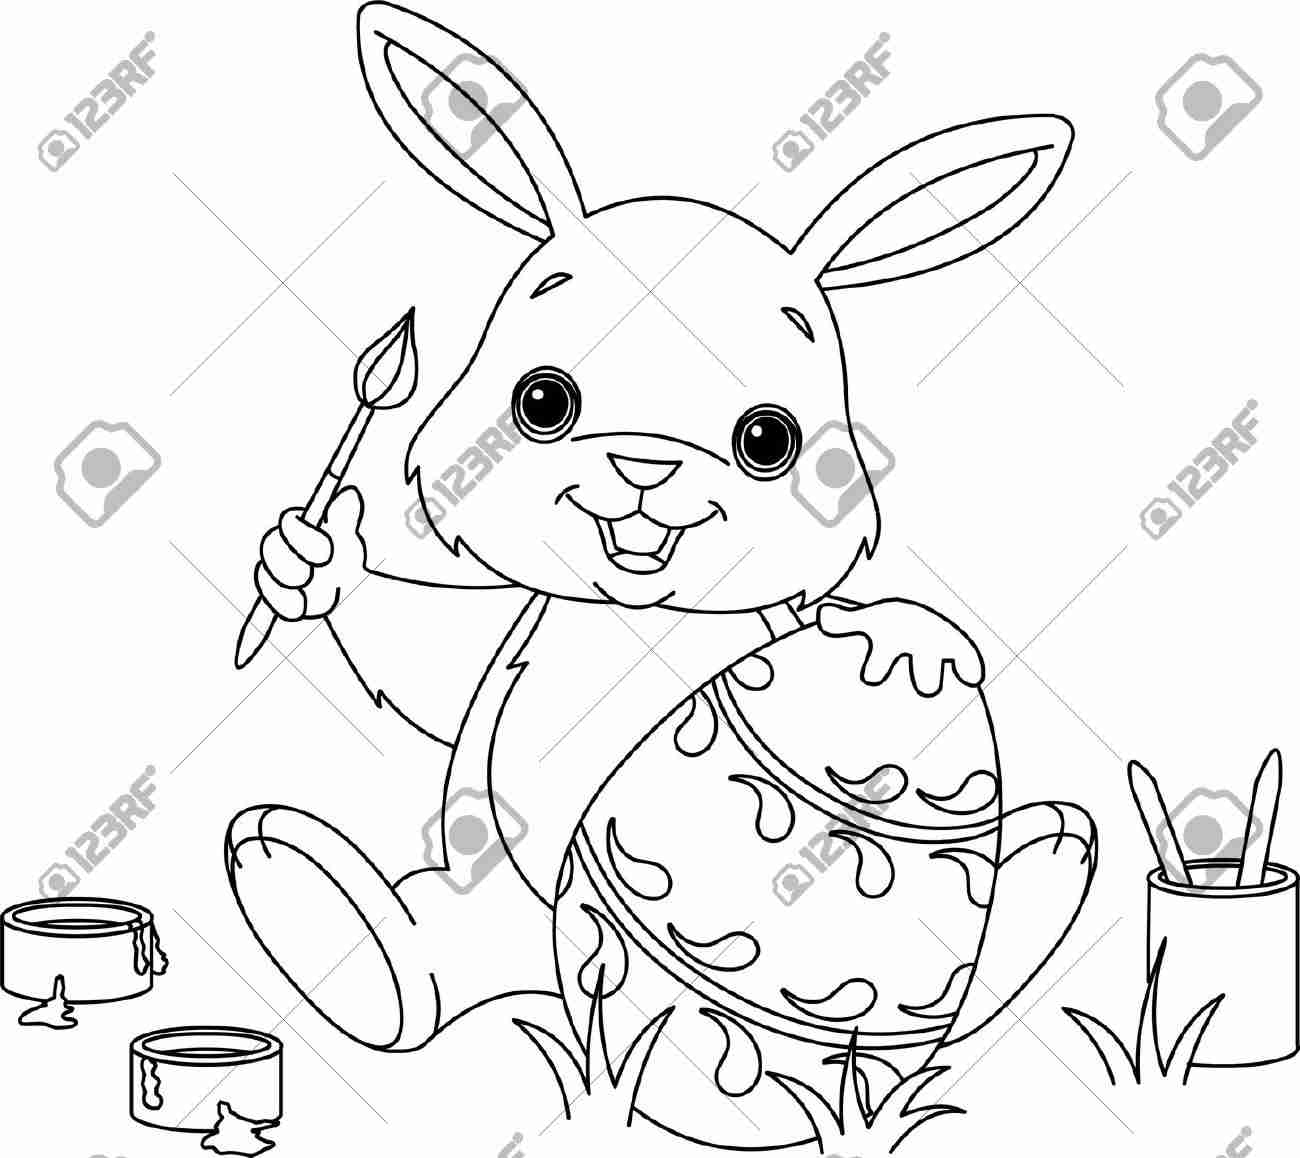 1300x1158 Cute Baby Bugs Bunny Coloring Page Wecoloringpage Prepossessing